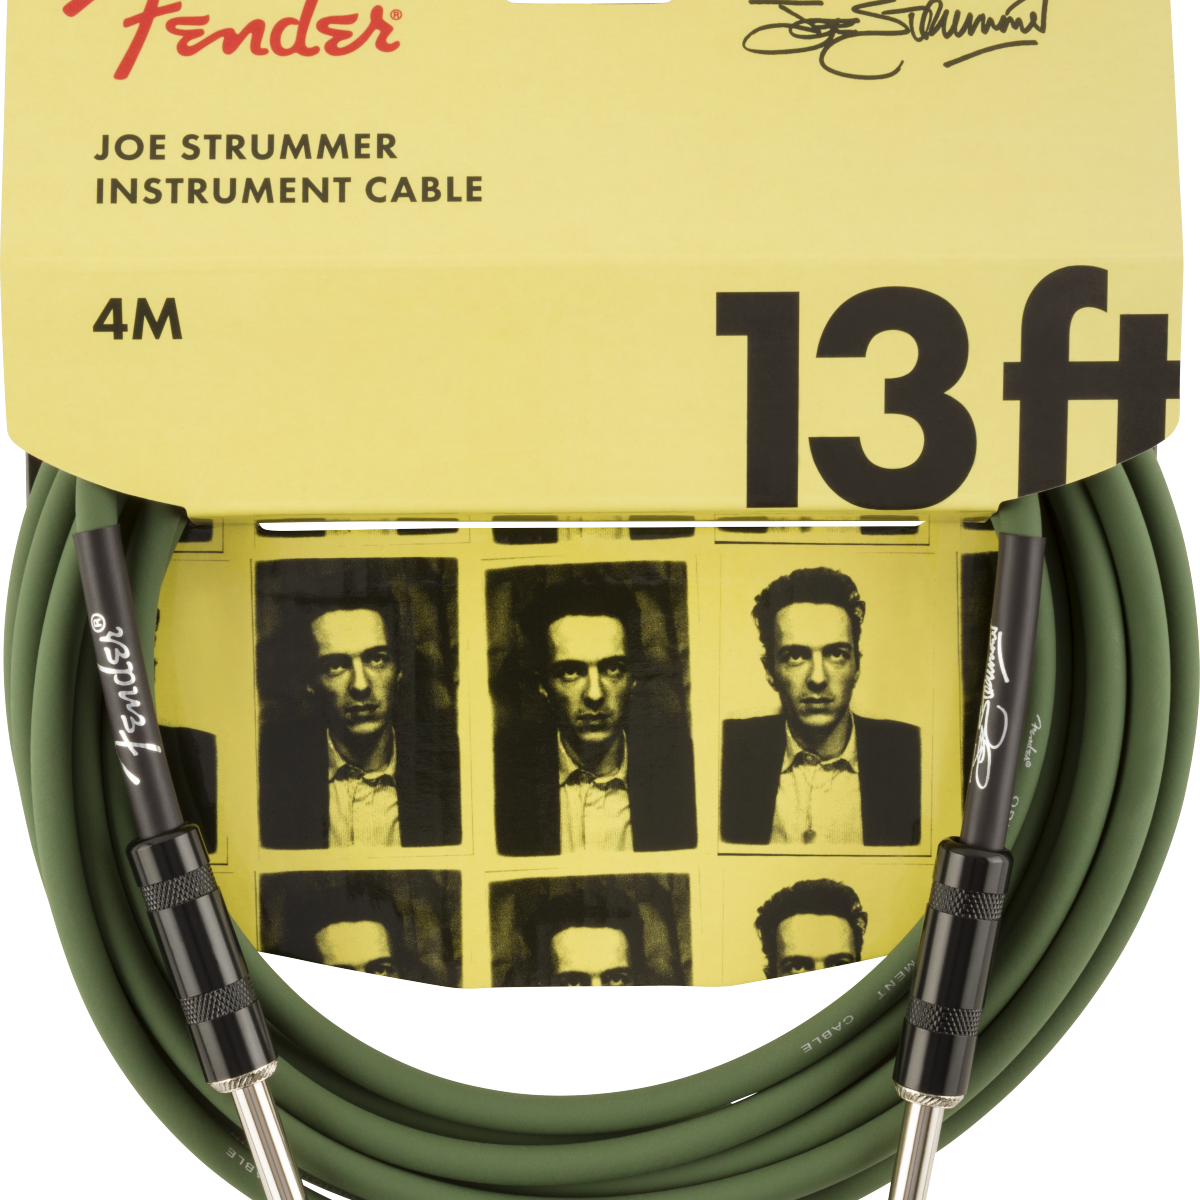 Fender Strummer Pro 13' Instrument Cable, Drab Green 4m